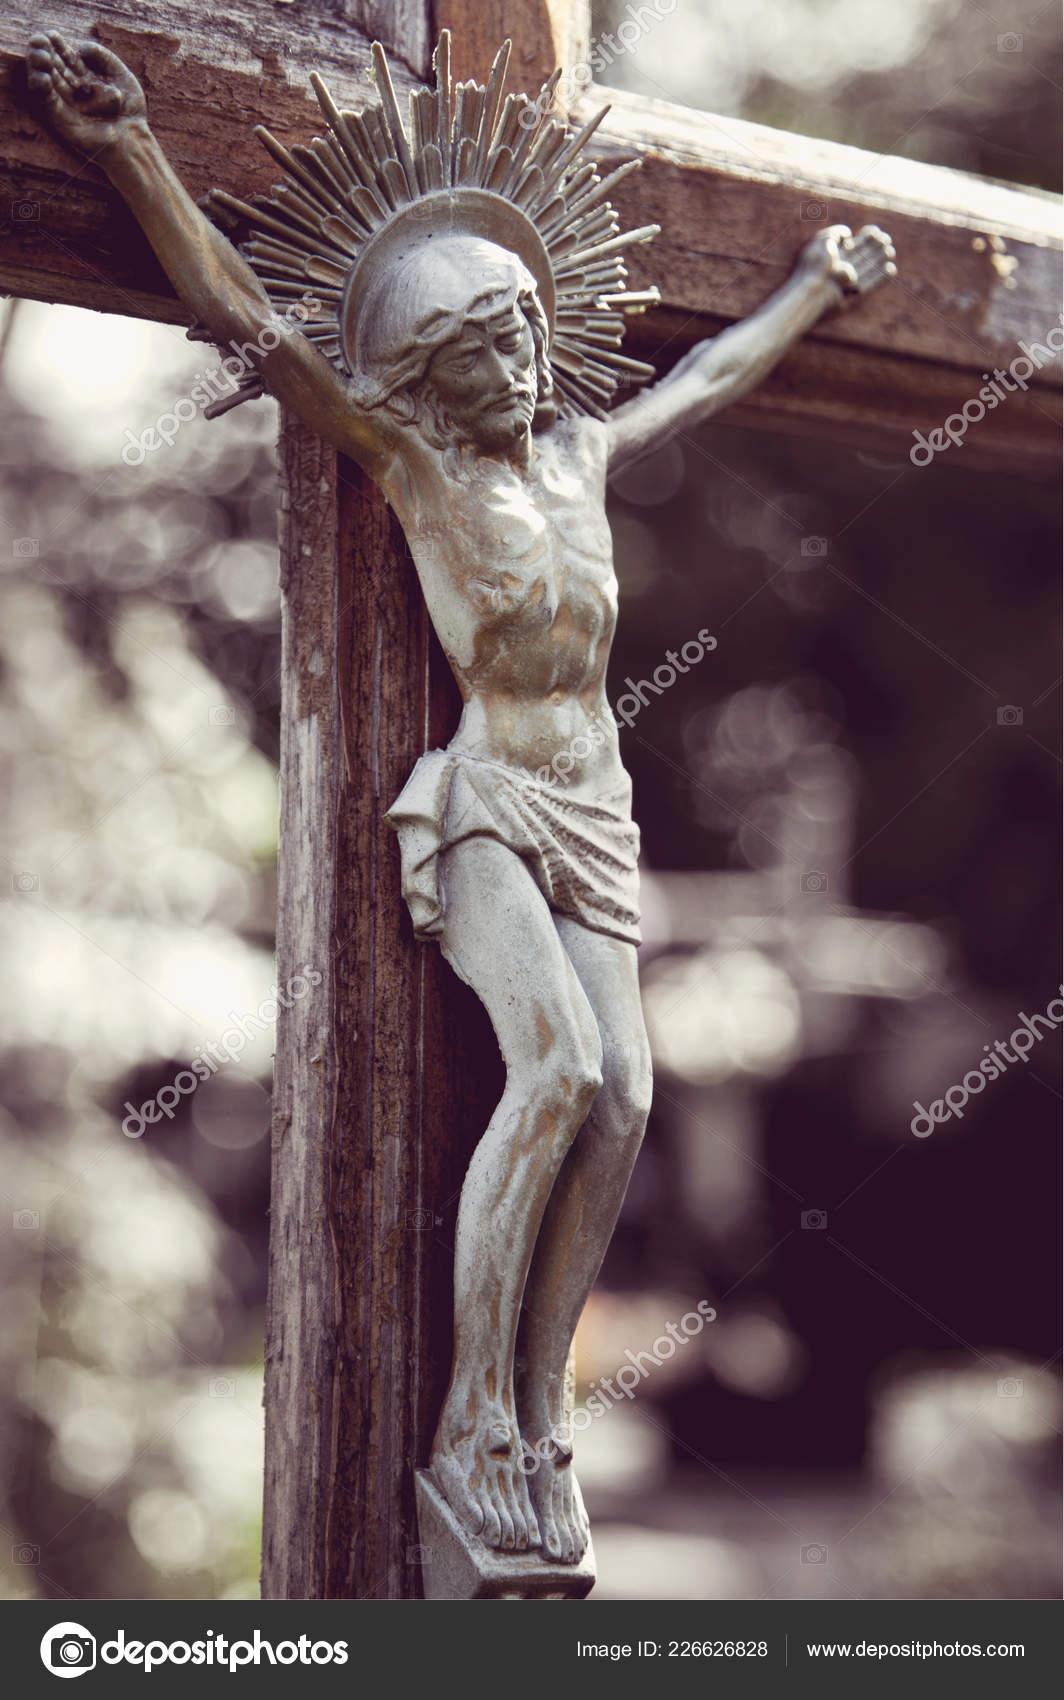 Crucifixion Jesus Christ Symbol Resurrection Immortality Human Soul